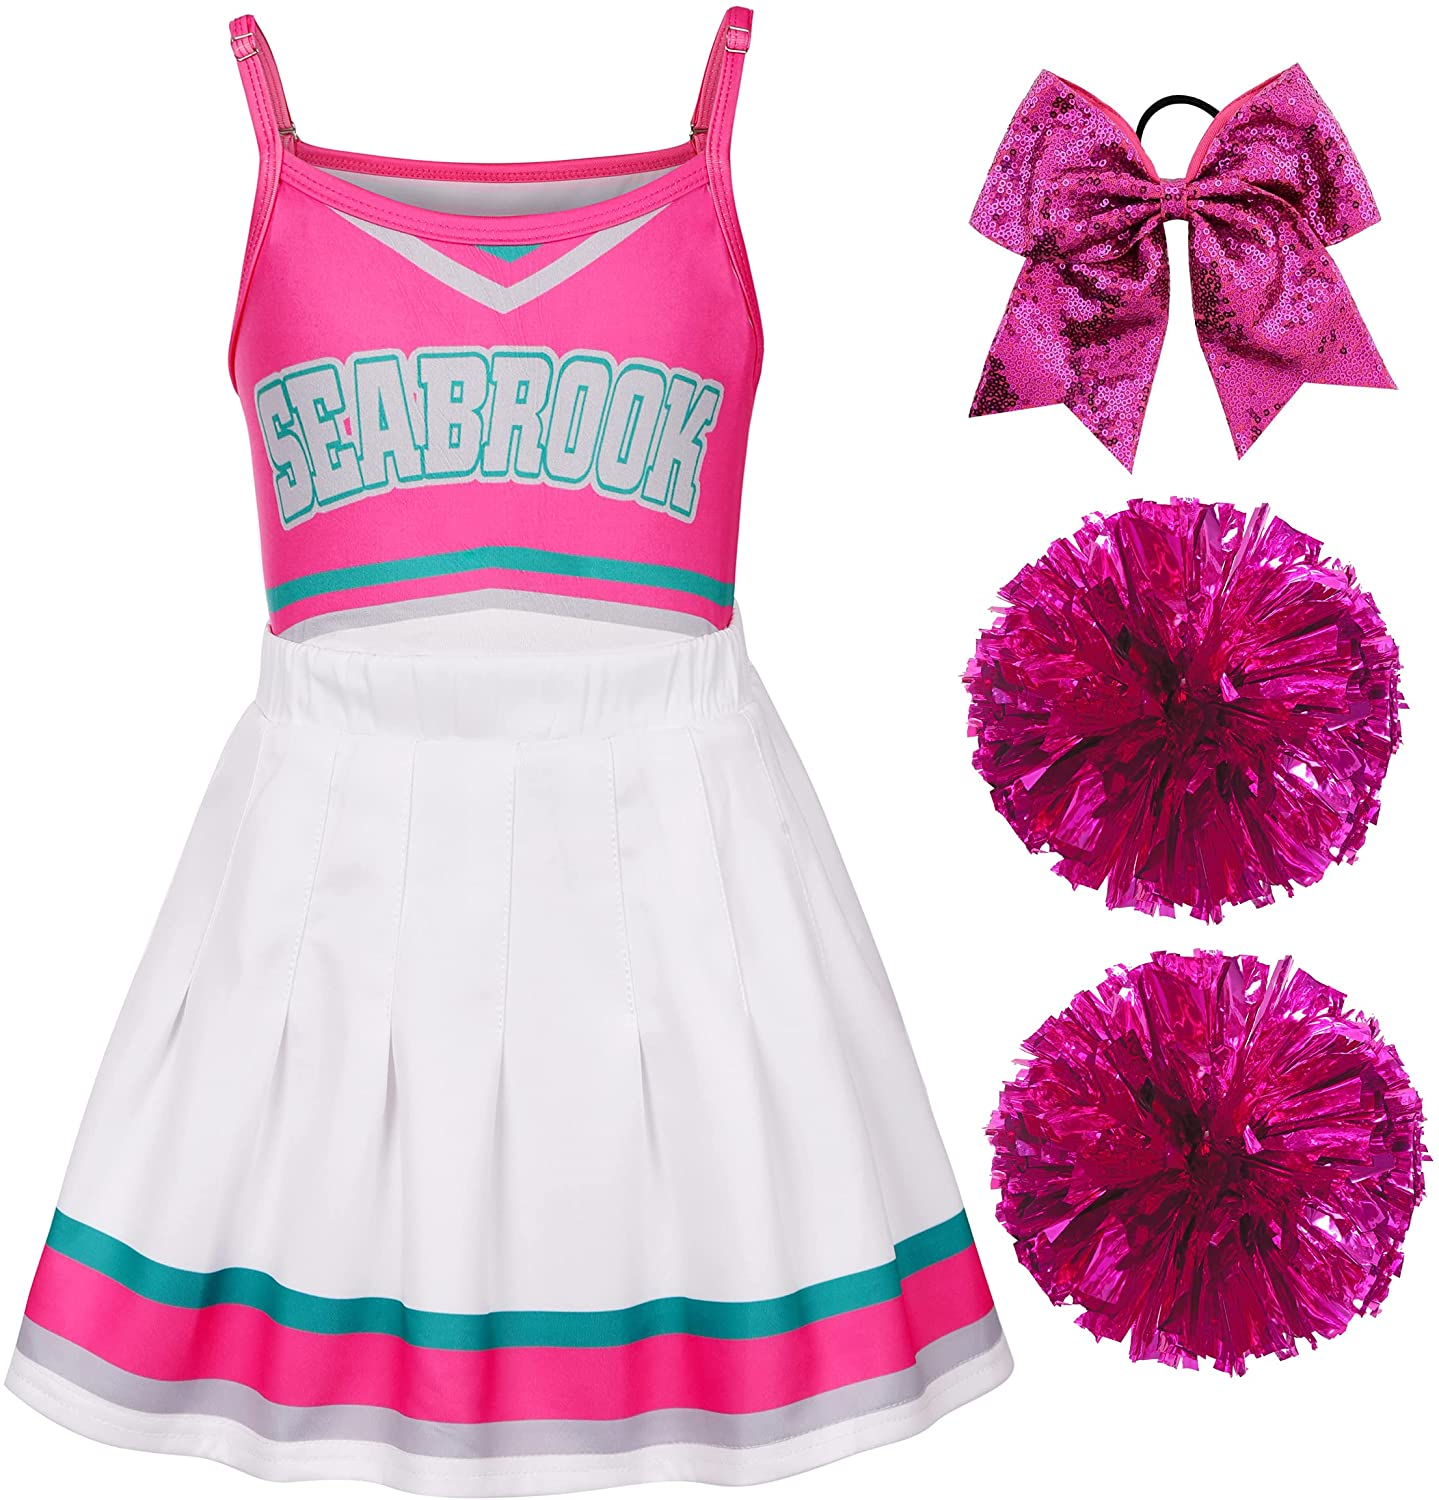 Girls depot Beauty products Cheerleader Costume Cheerleading Outfit Ha Dress for Fancy